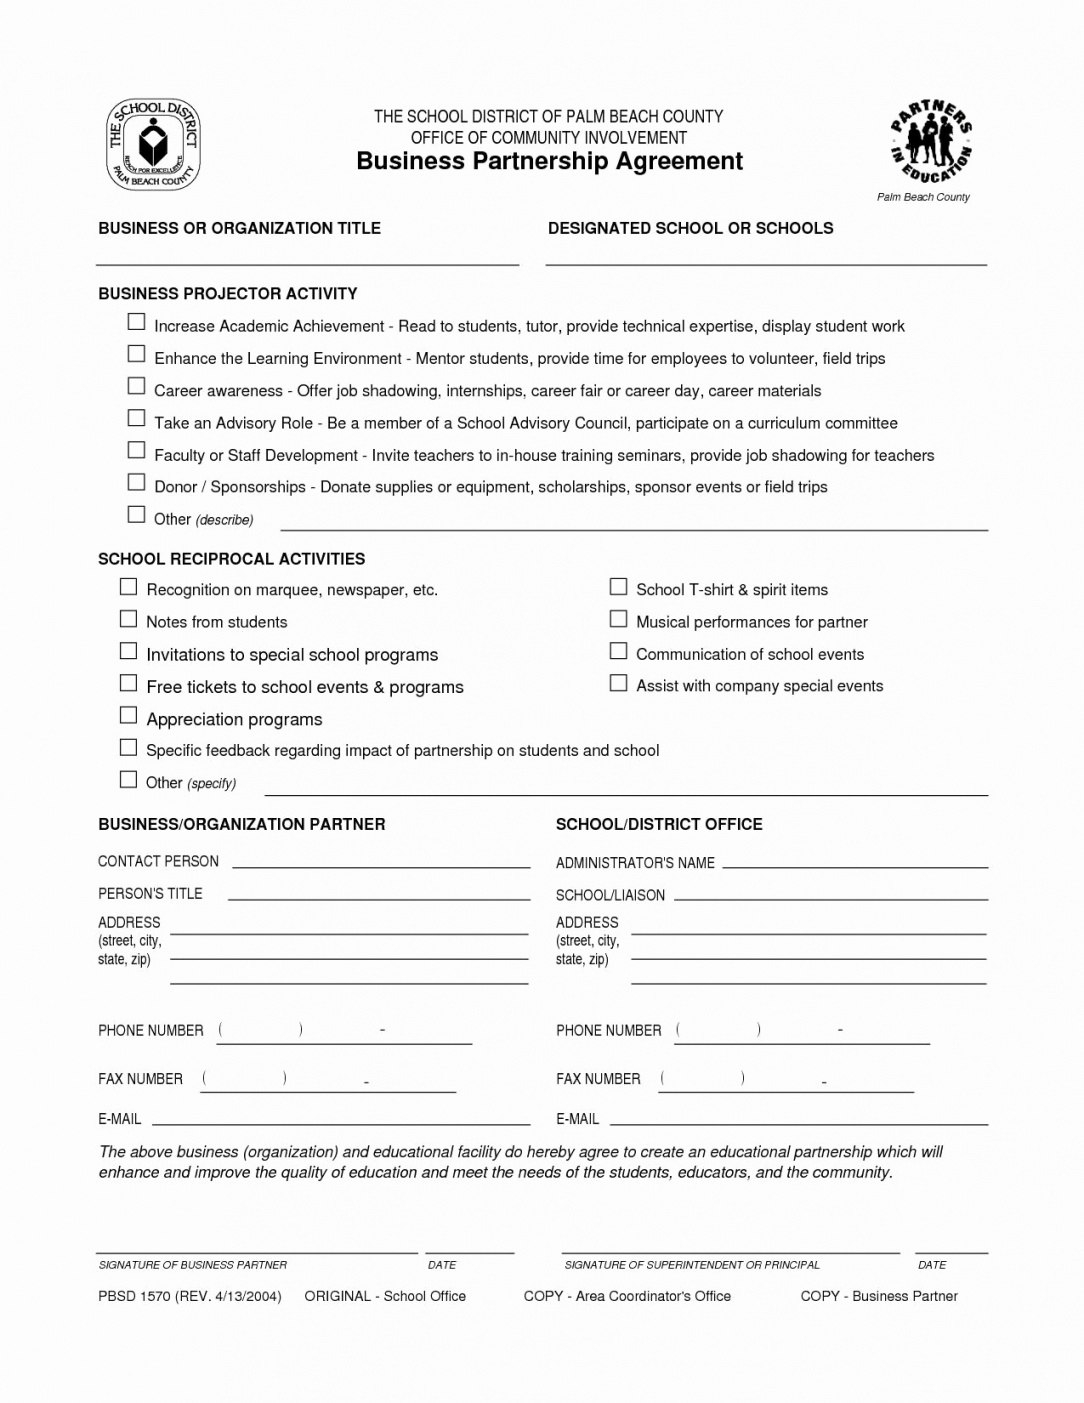 Business Partnership Contract Template  – Elsik Blue Cetane For Business Contract Template For Partnership